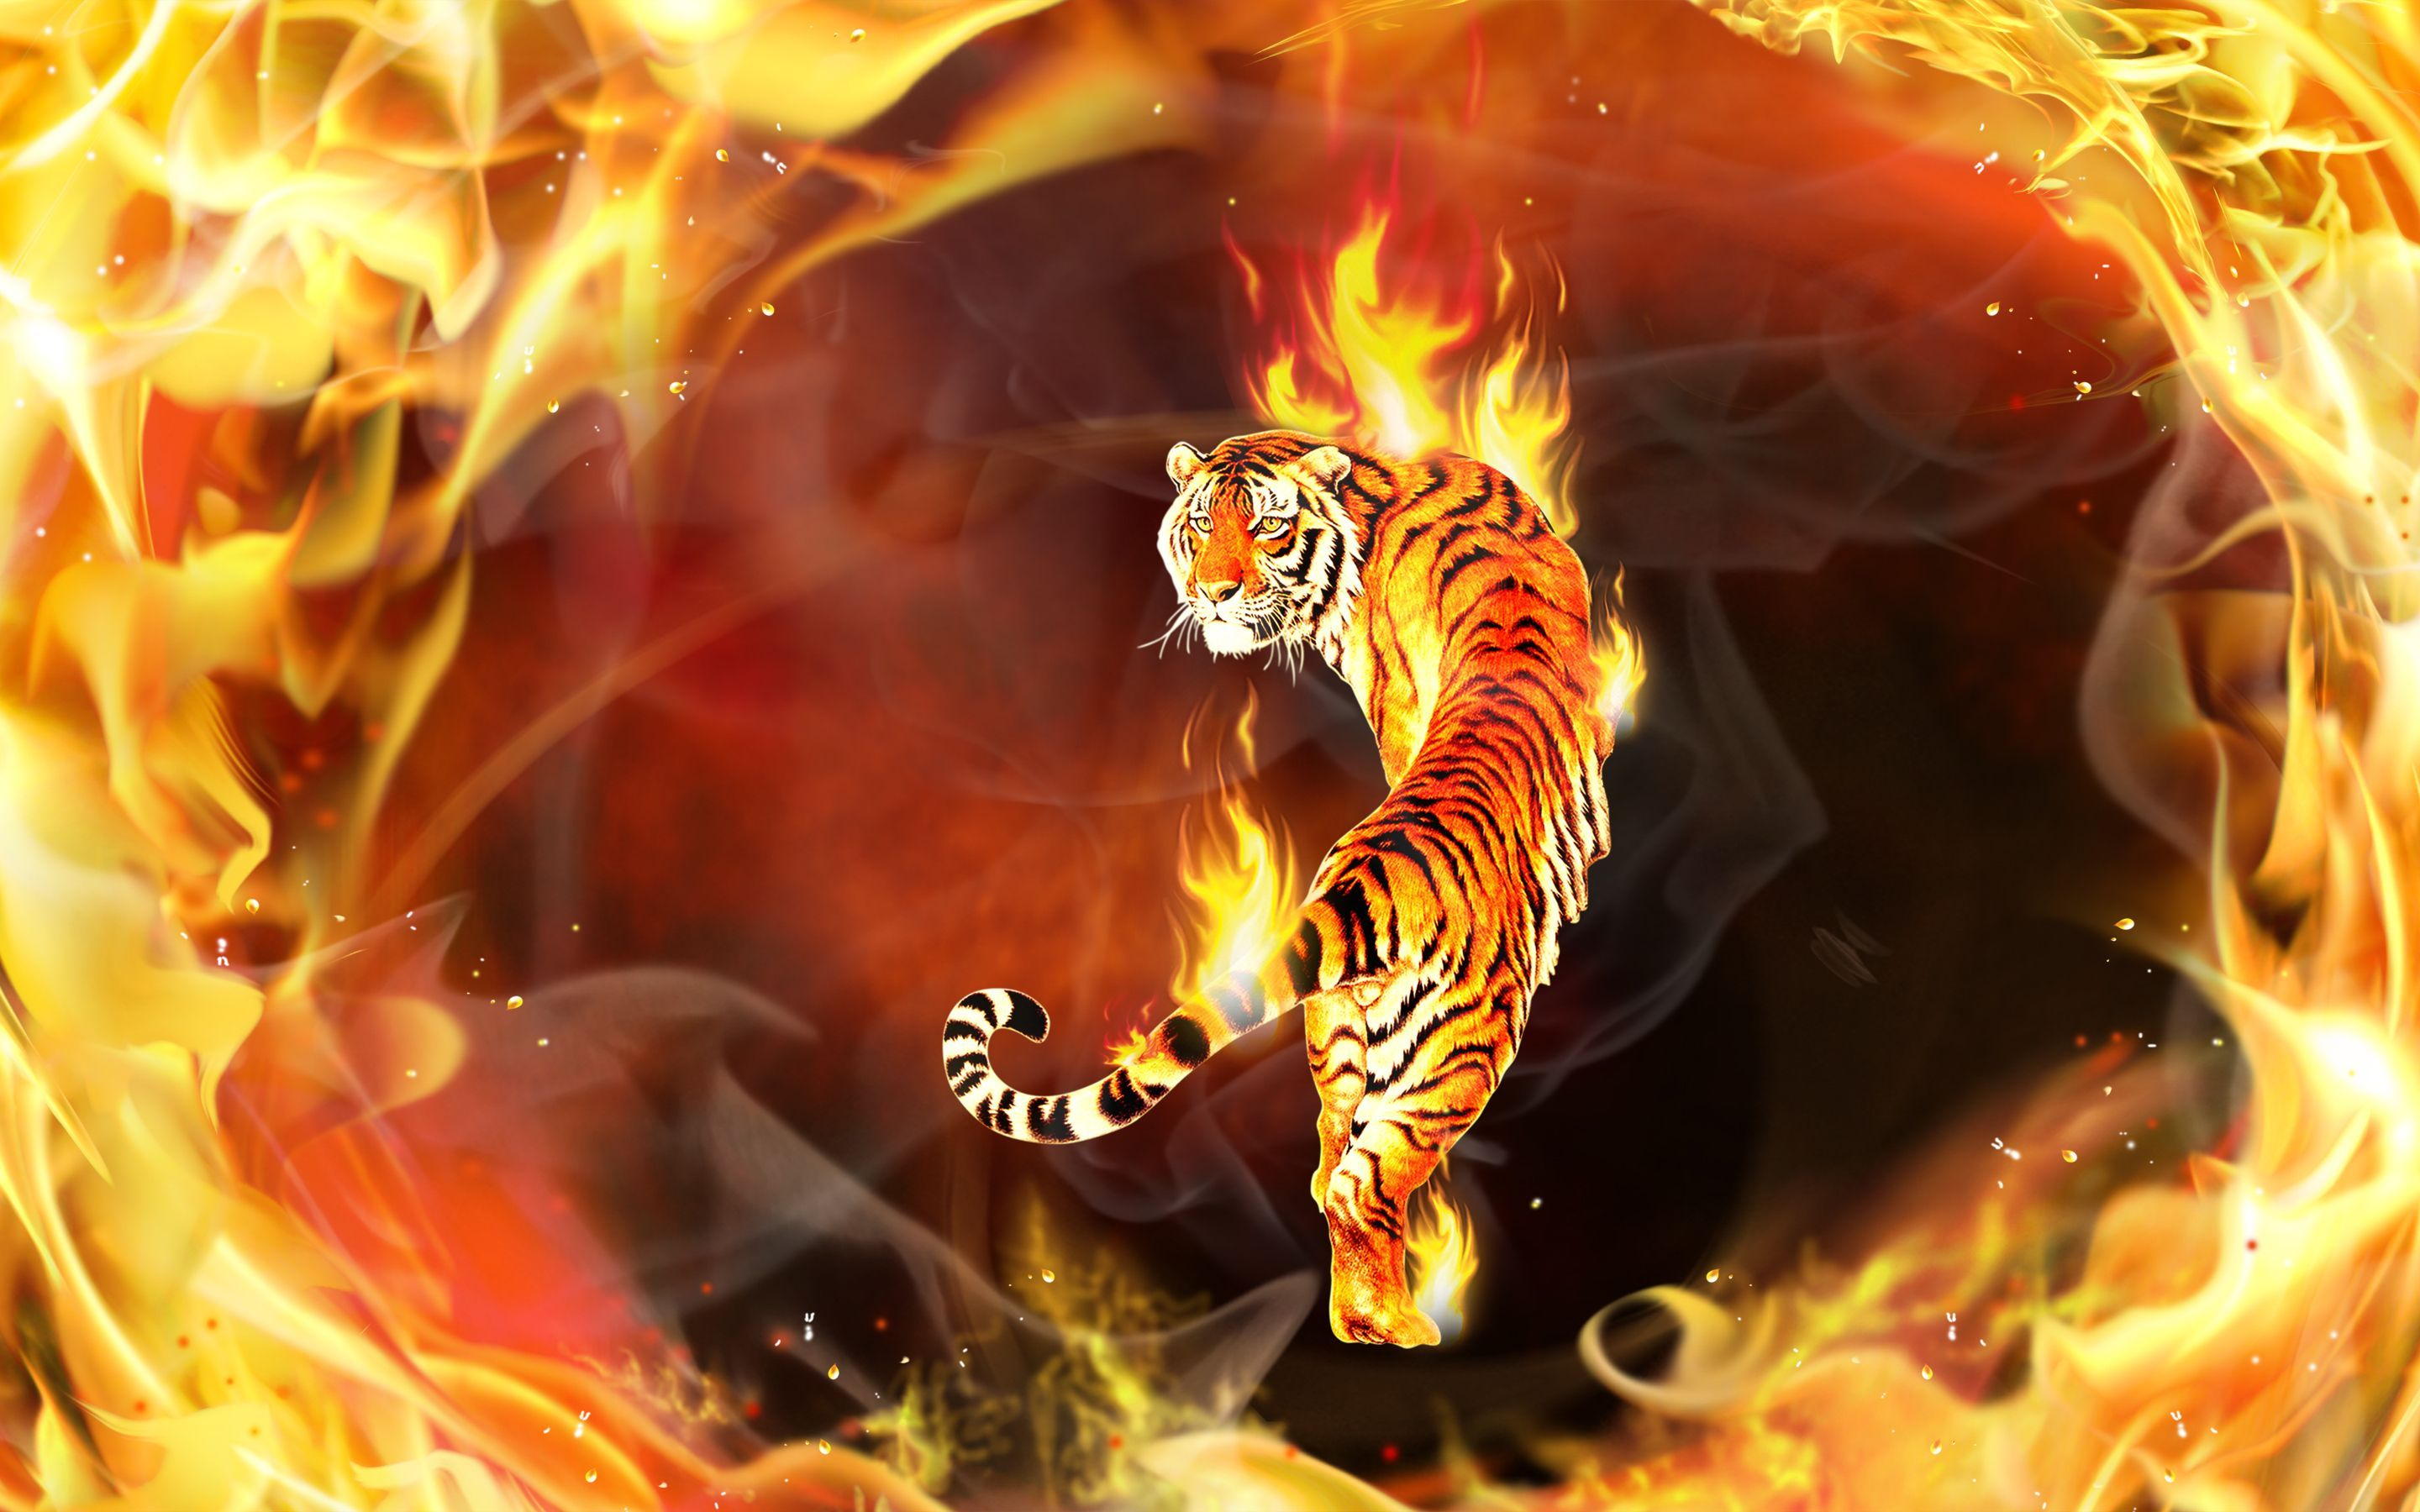 Fire tiger flames digital art hd wallpaper apanache fire tiger flames digital art hd wallpaper thecheapjerseys Gallery